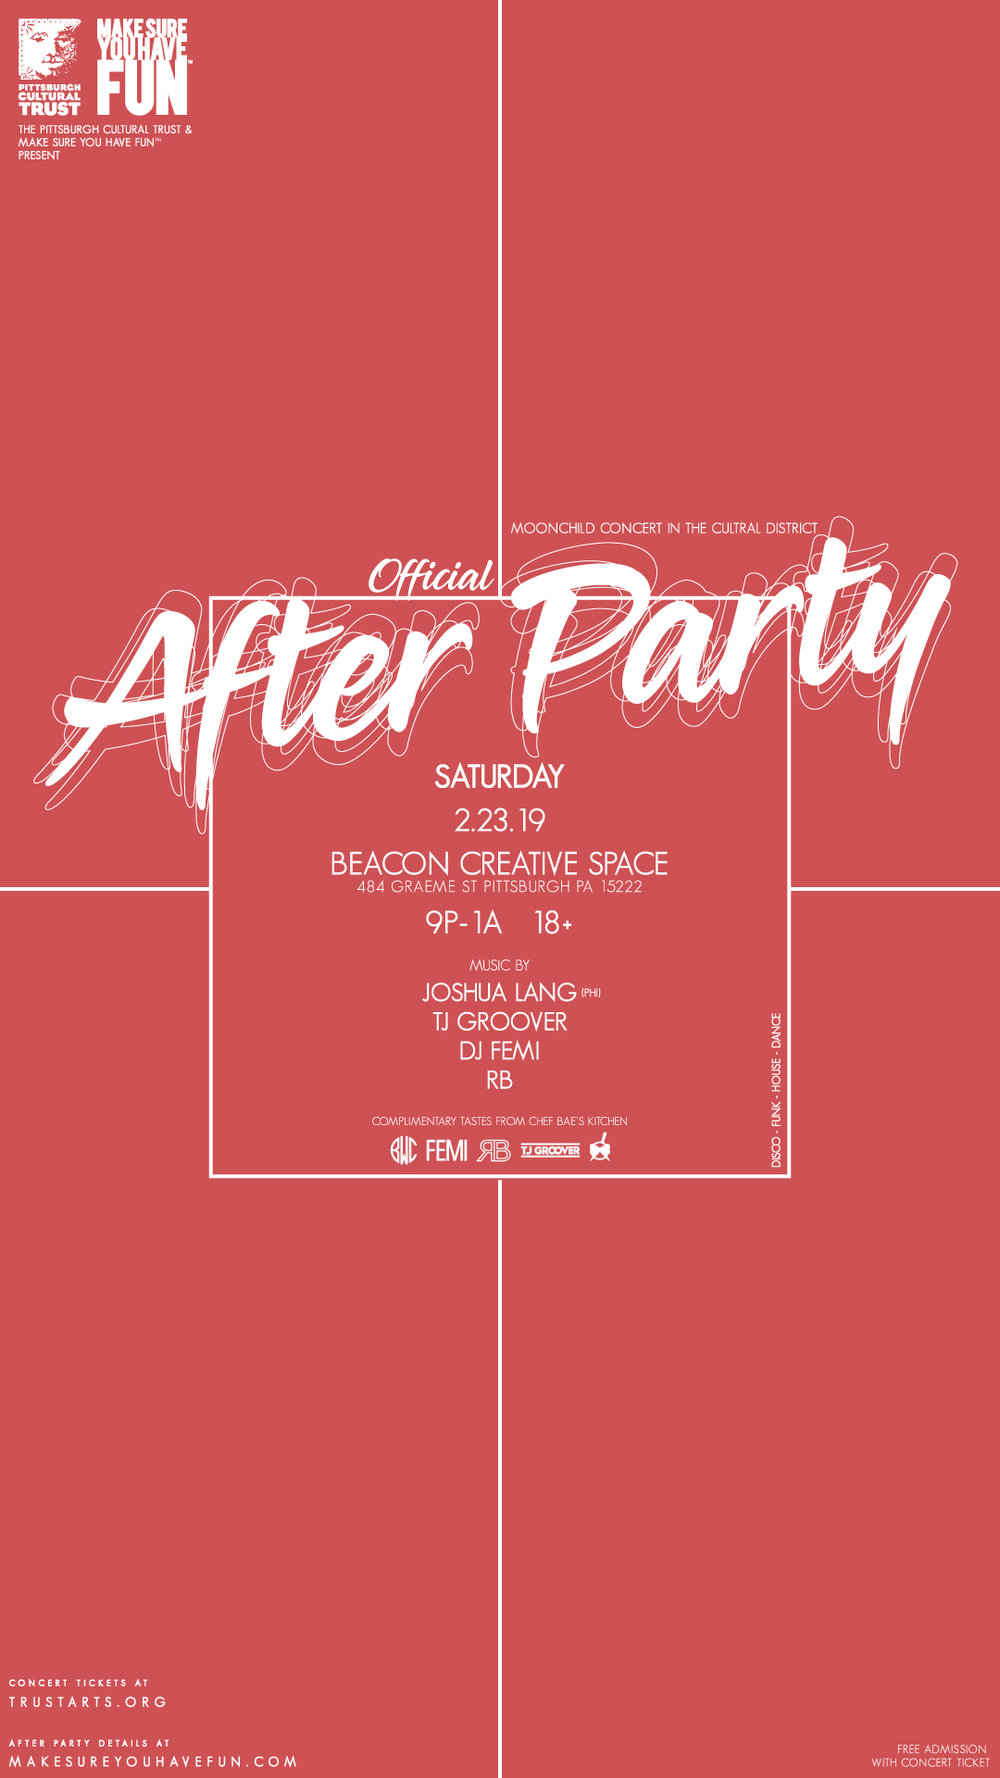 Moonchild-After-Party-IG-Story-Flyer.jpg